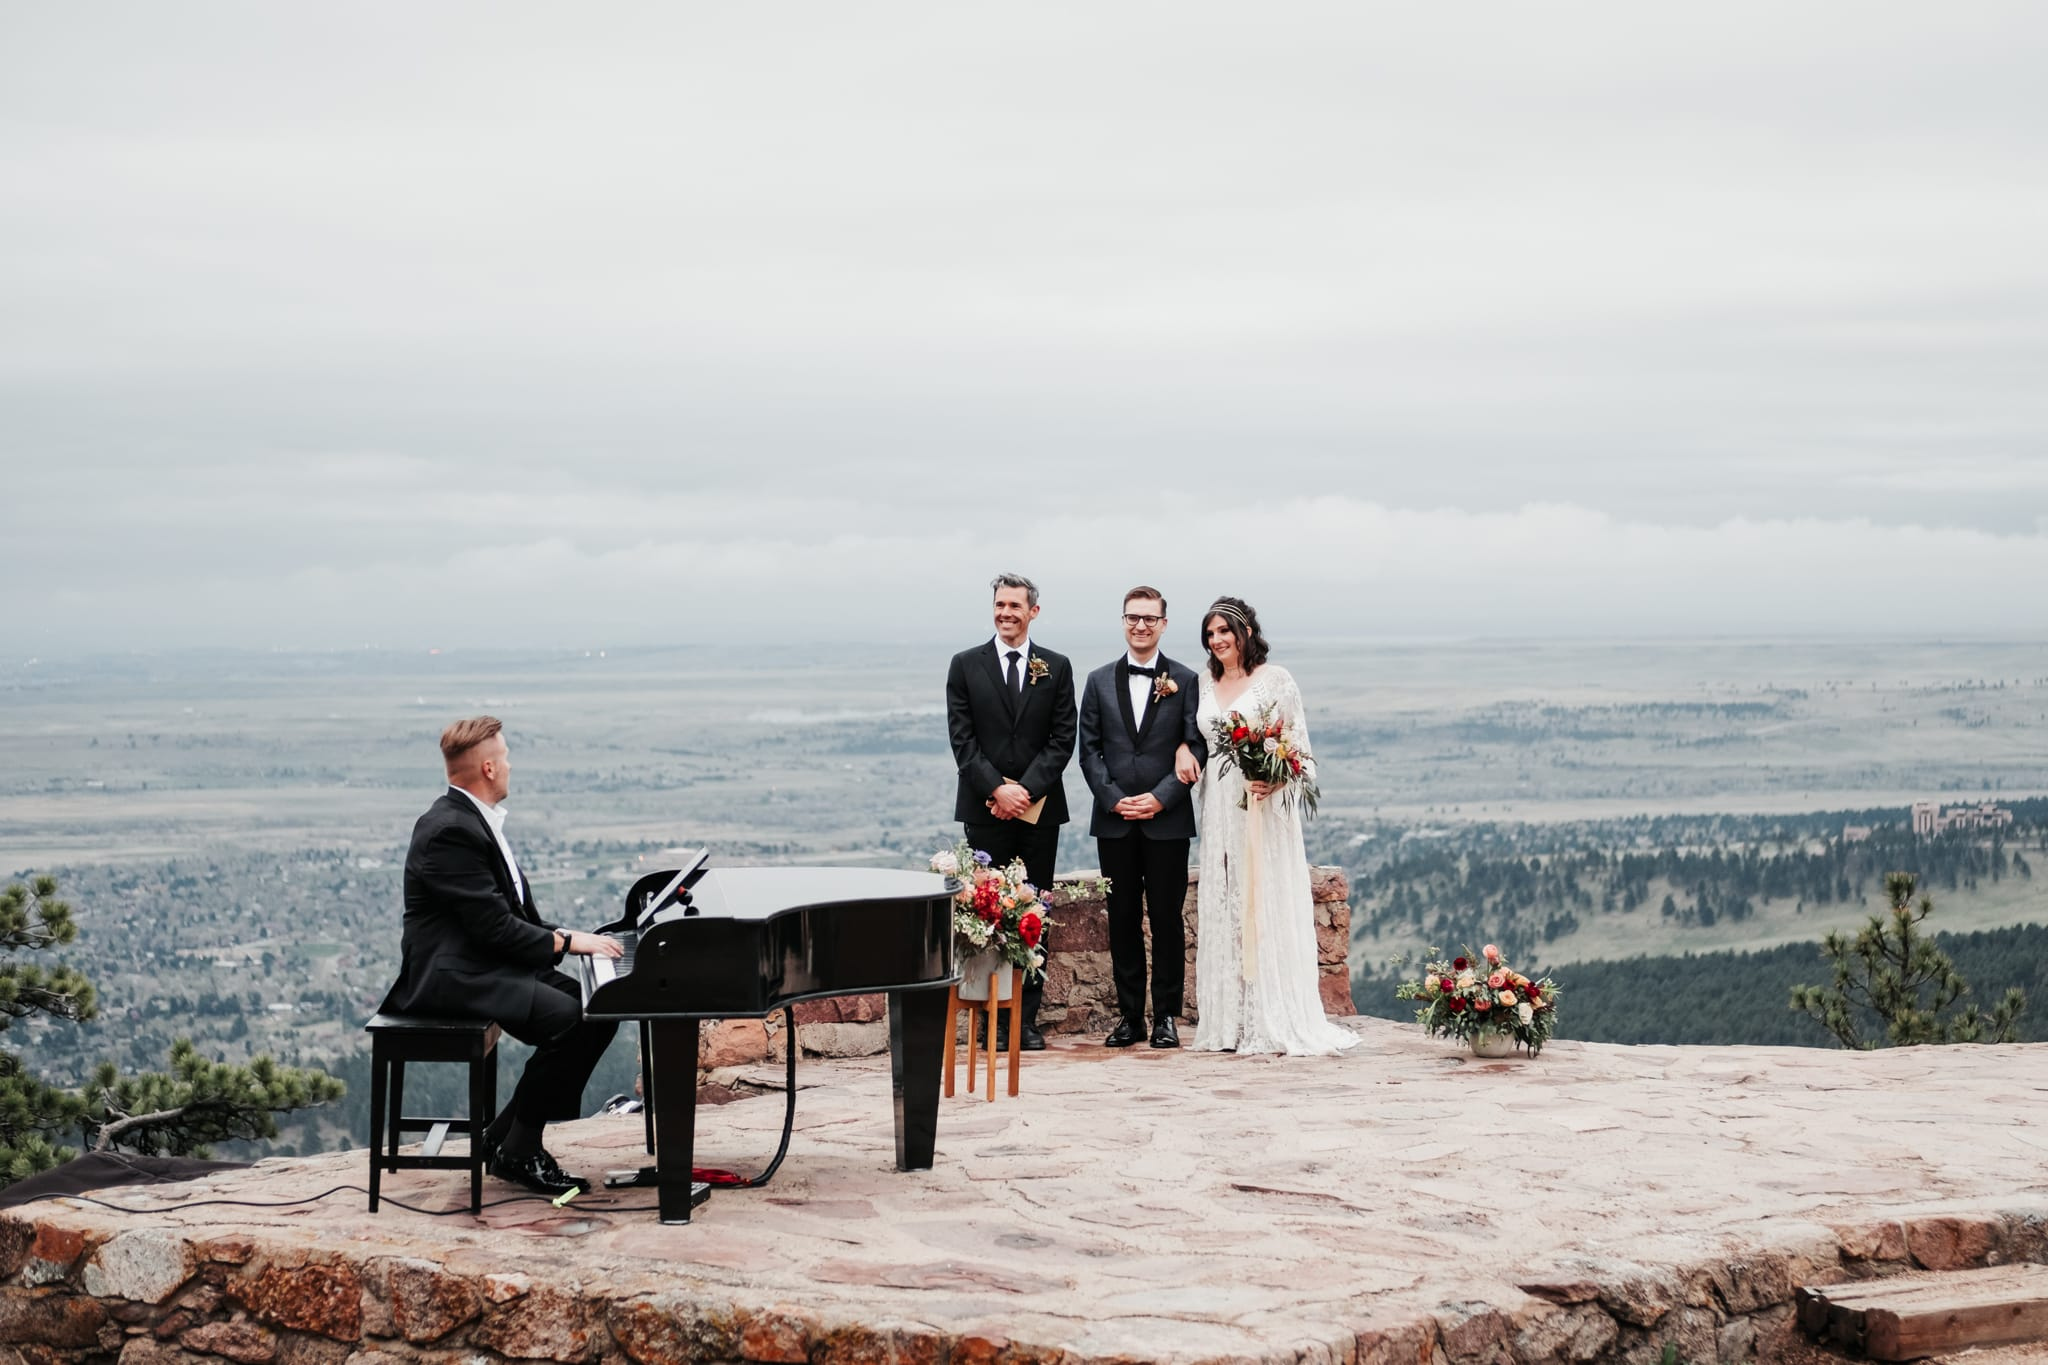 Sunrise Amphitheater Elopement, Flagstaff Boulder wedding photographer, Colorado wedding ceremony venue